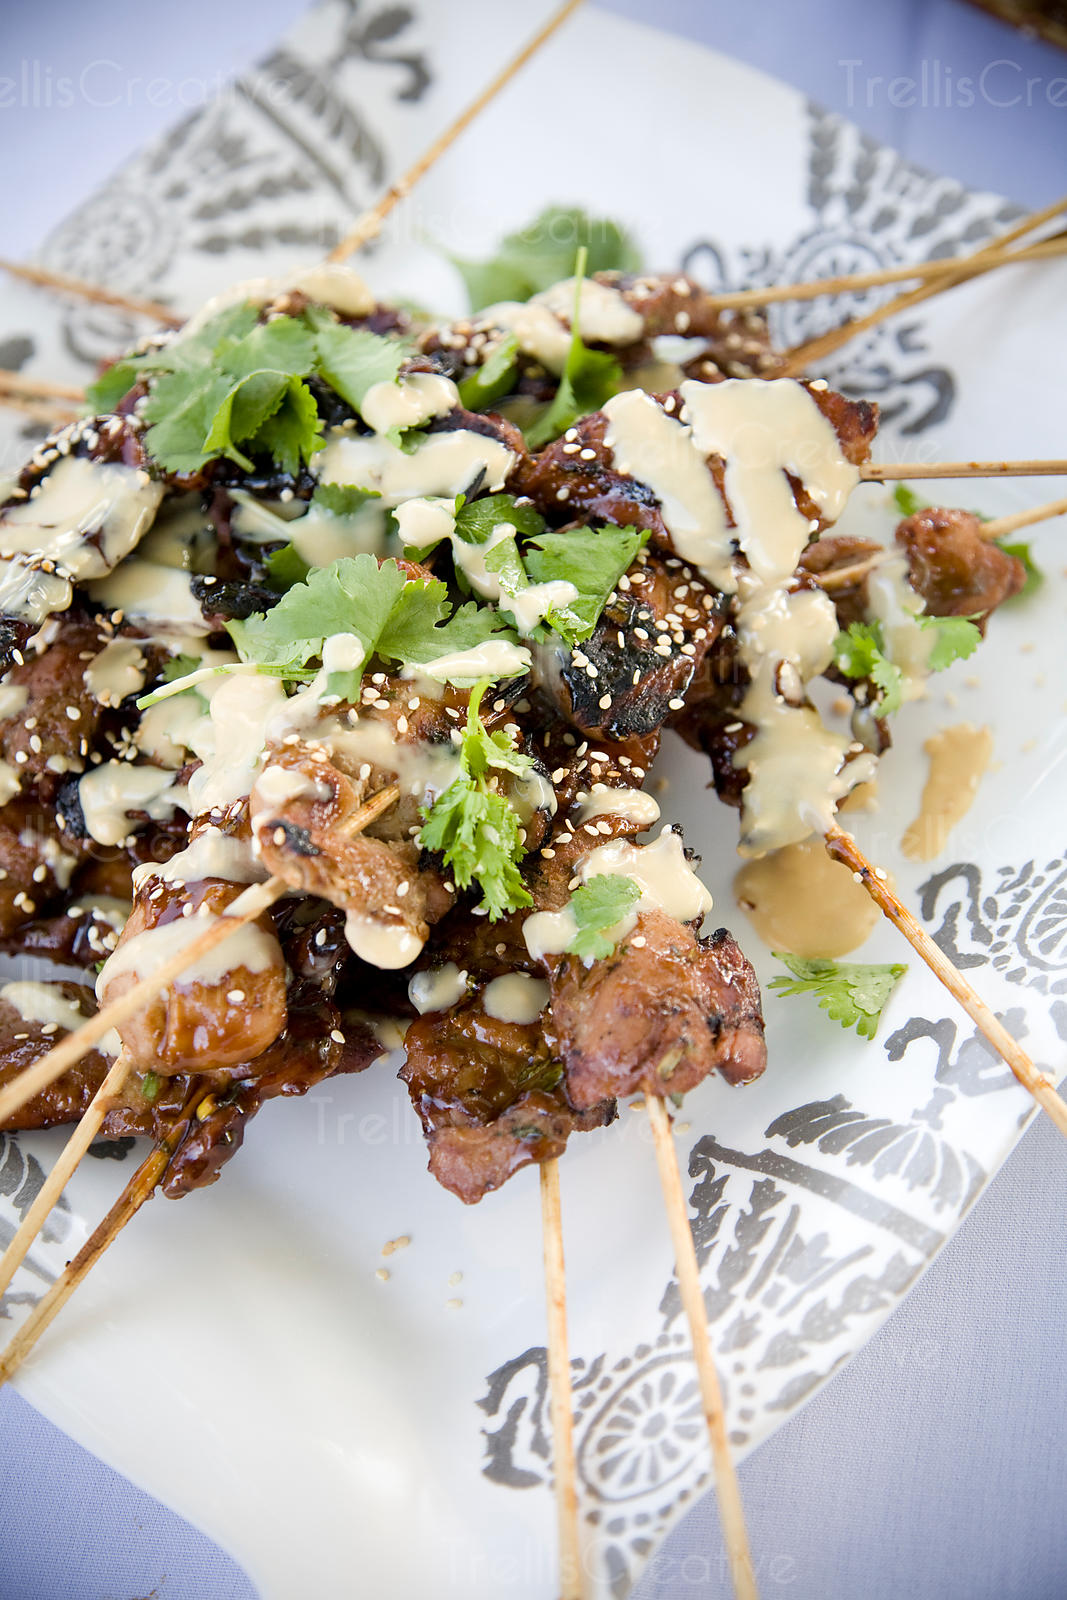 Chicken skewers with spicy thai peanut sauce garnished with sesame seeds